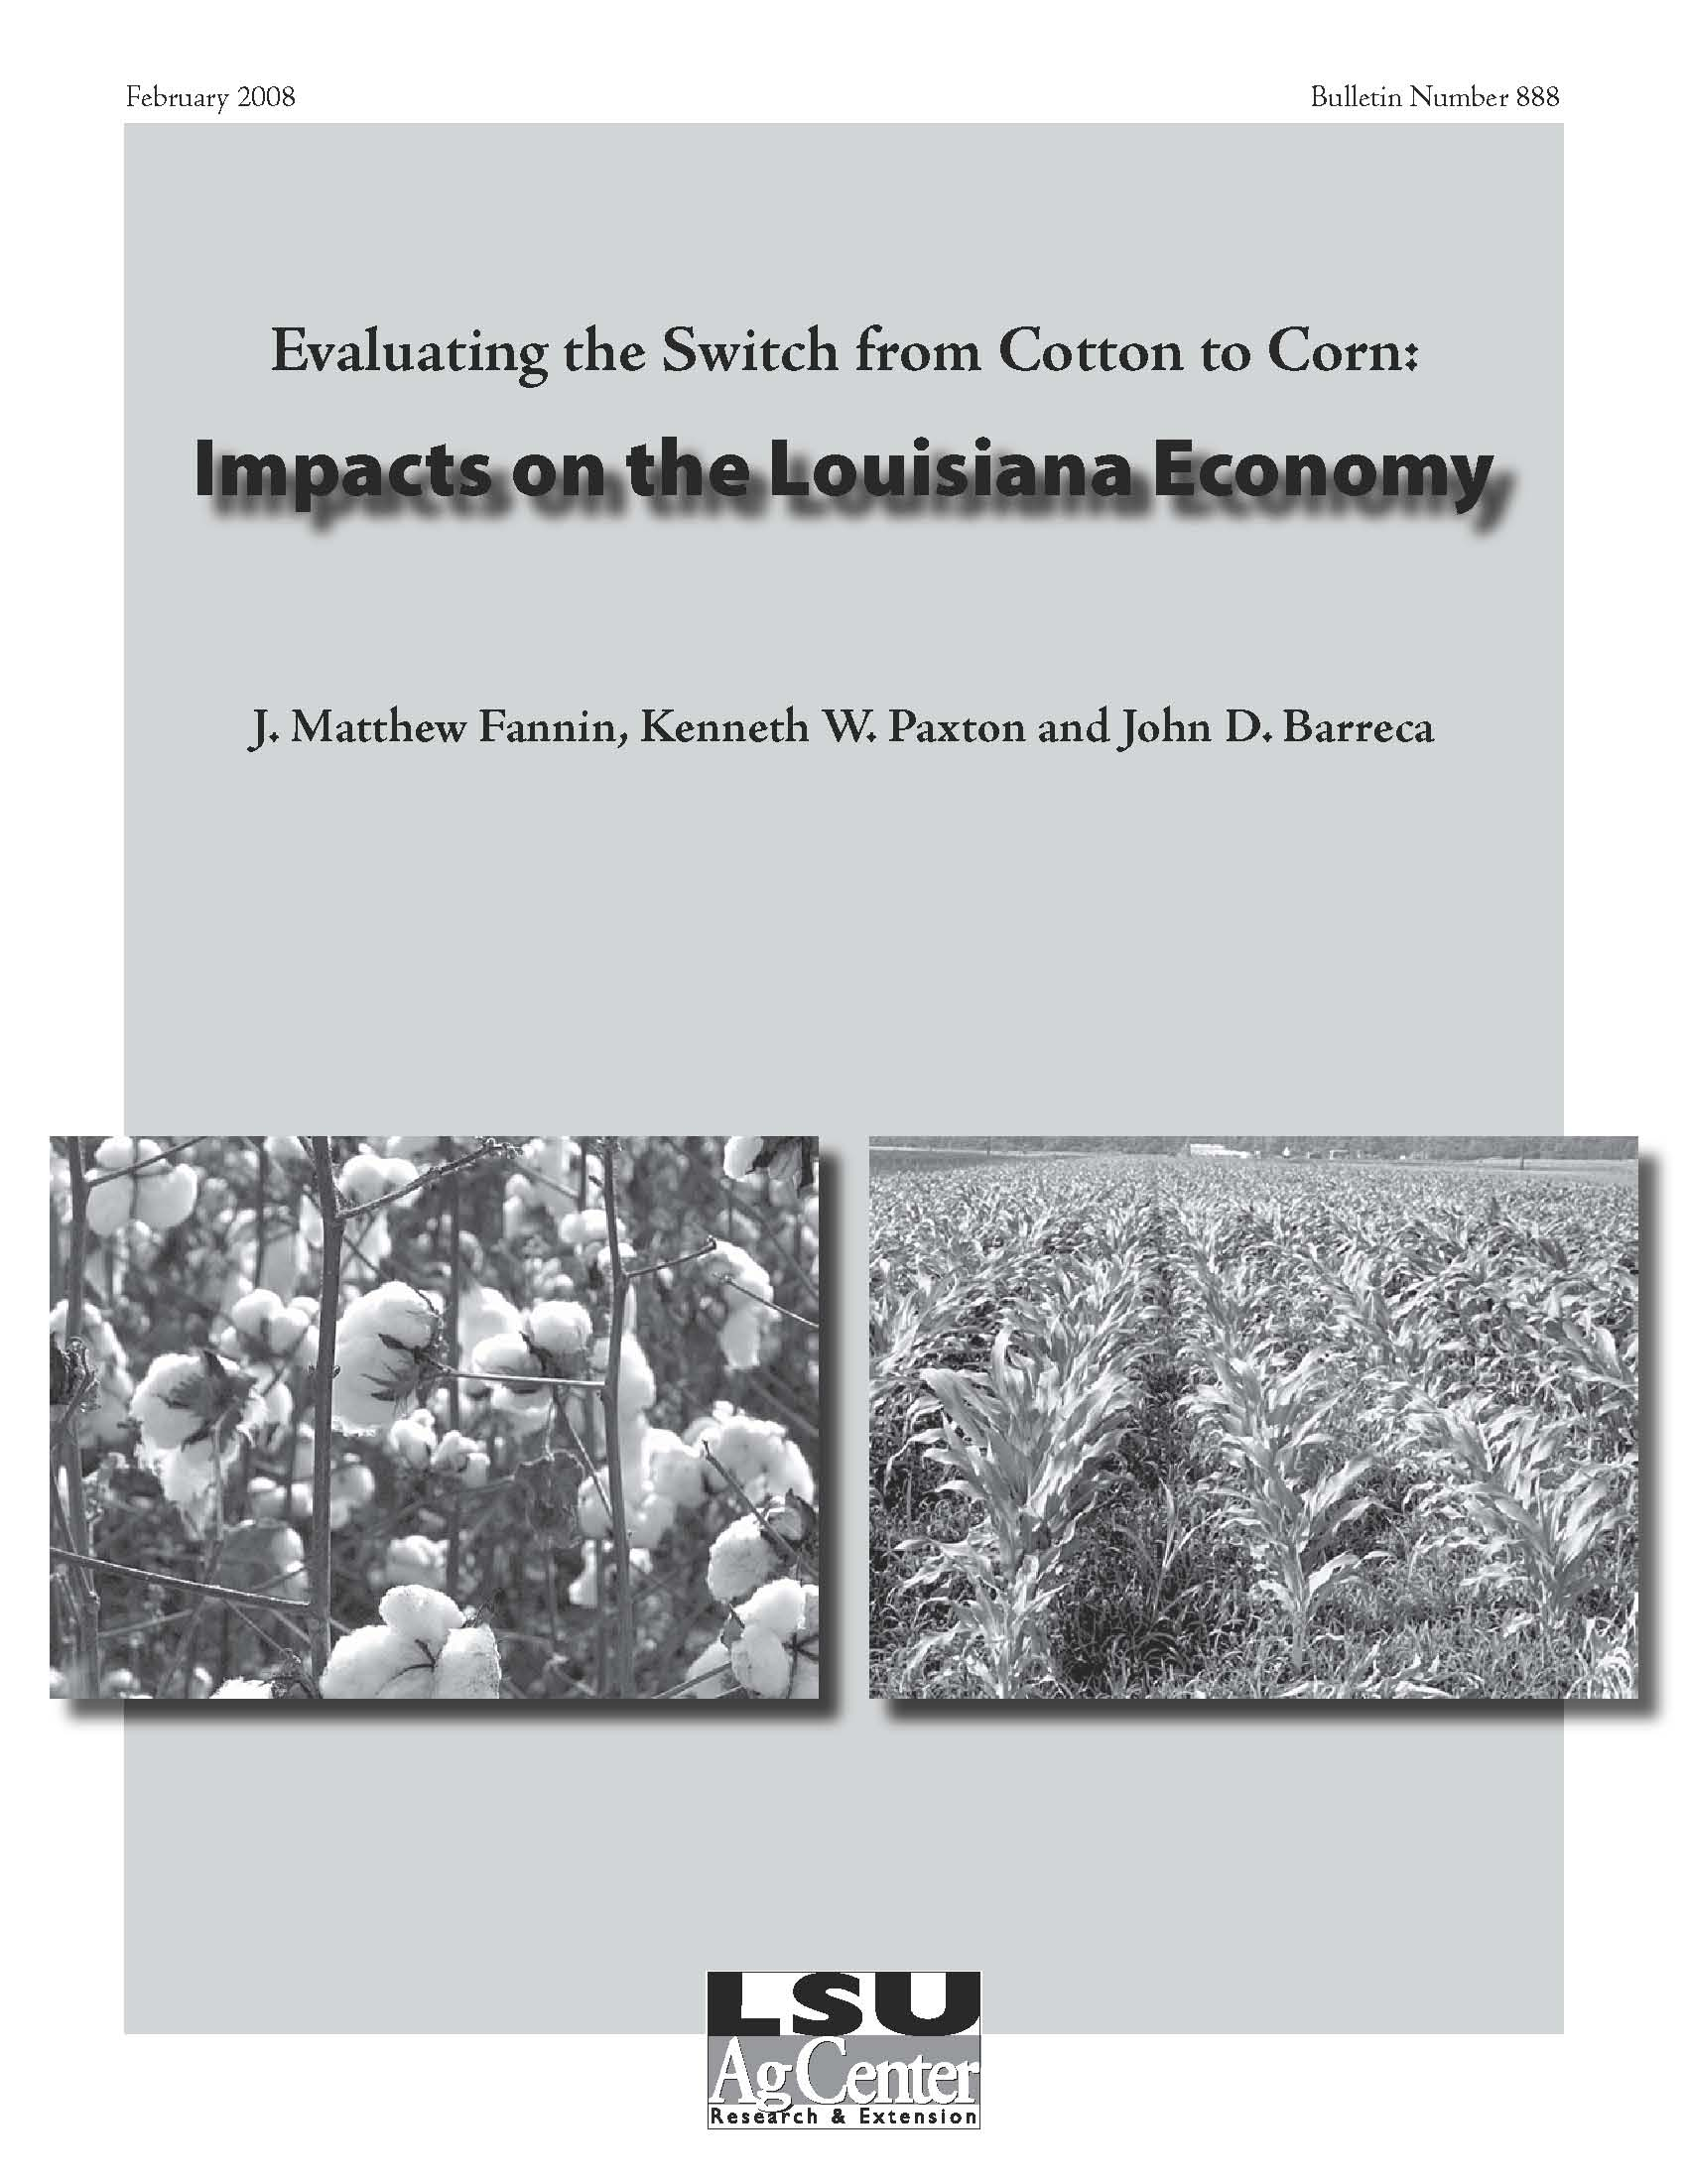 Evaluating the Shift from Cotton to Corn:  Impacts on the Louisiana Economy